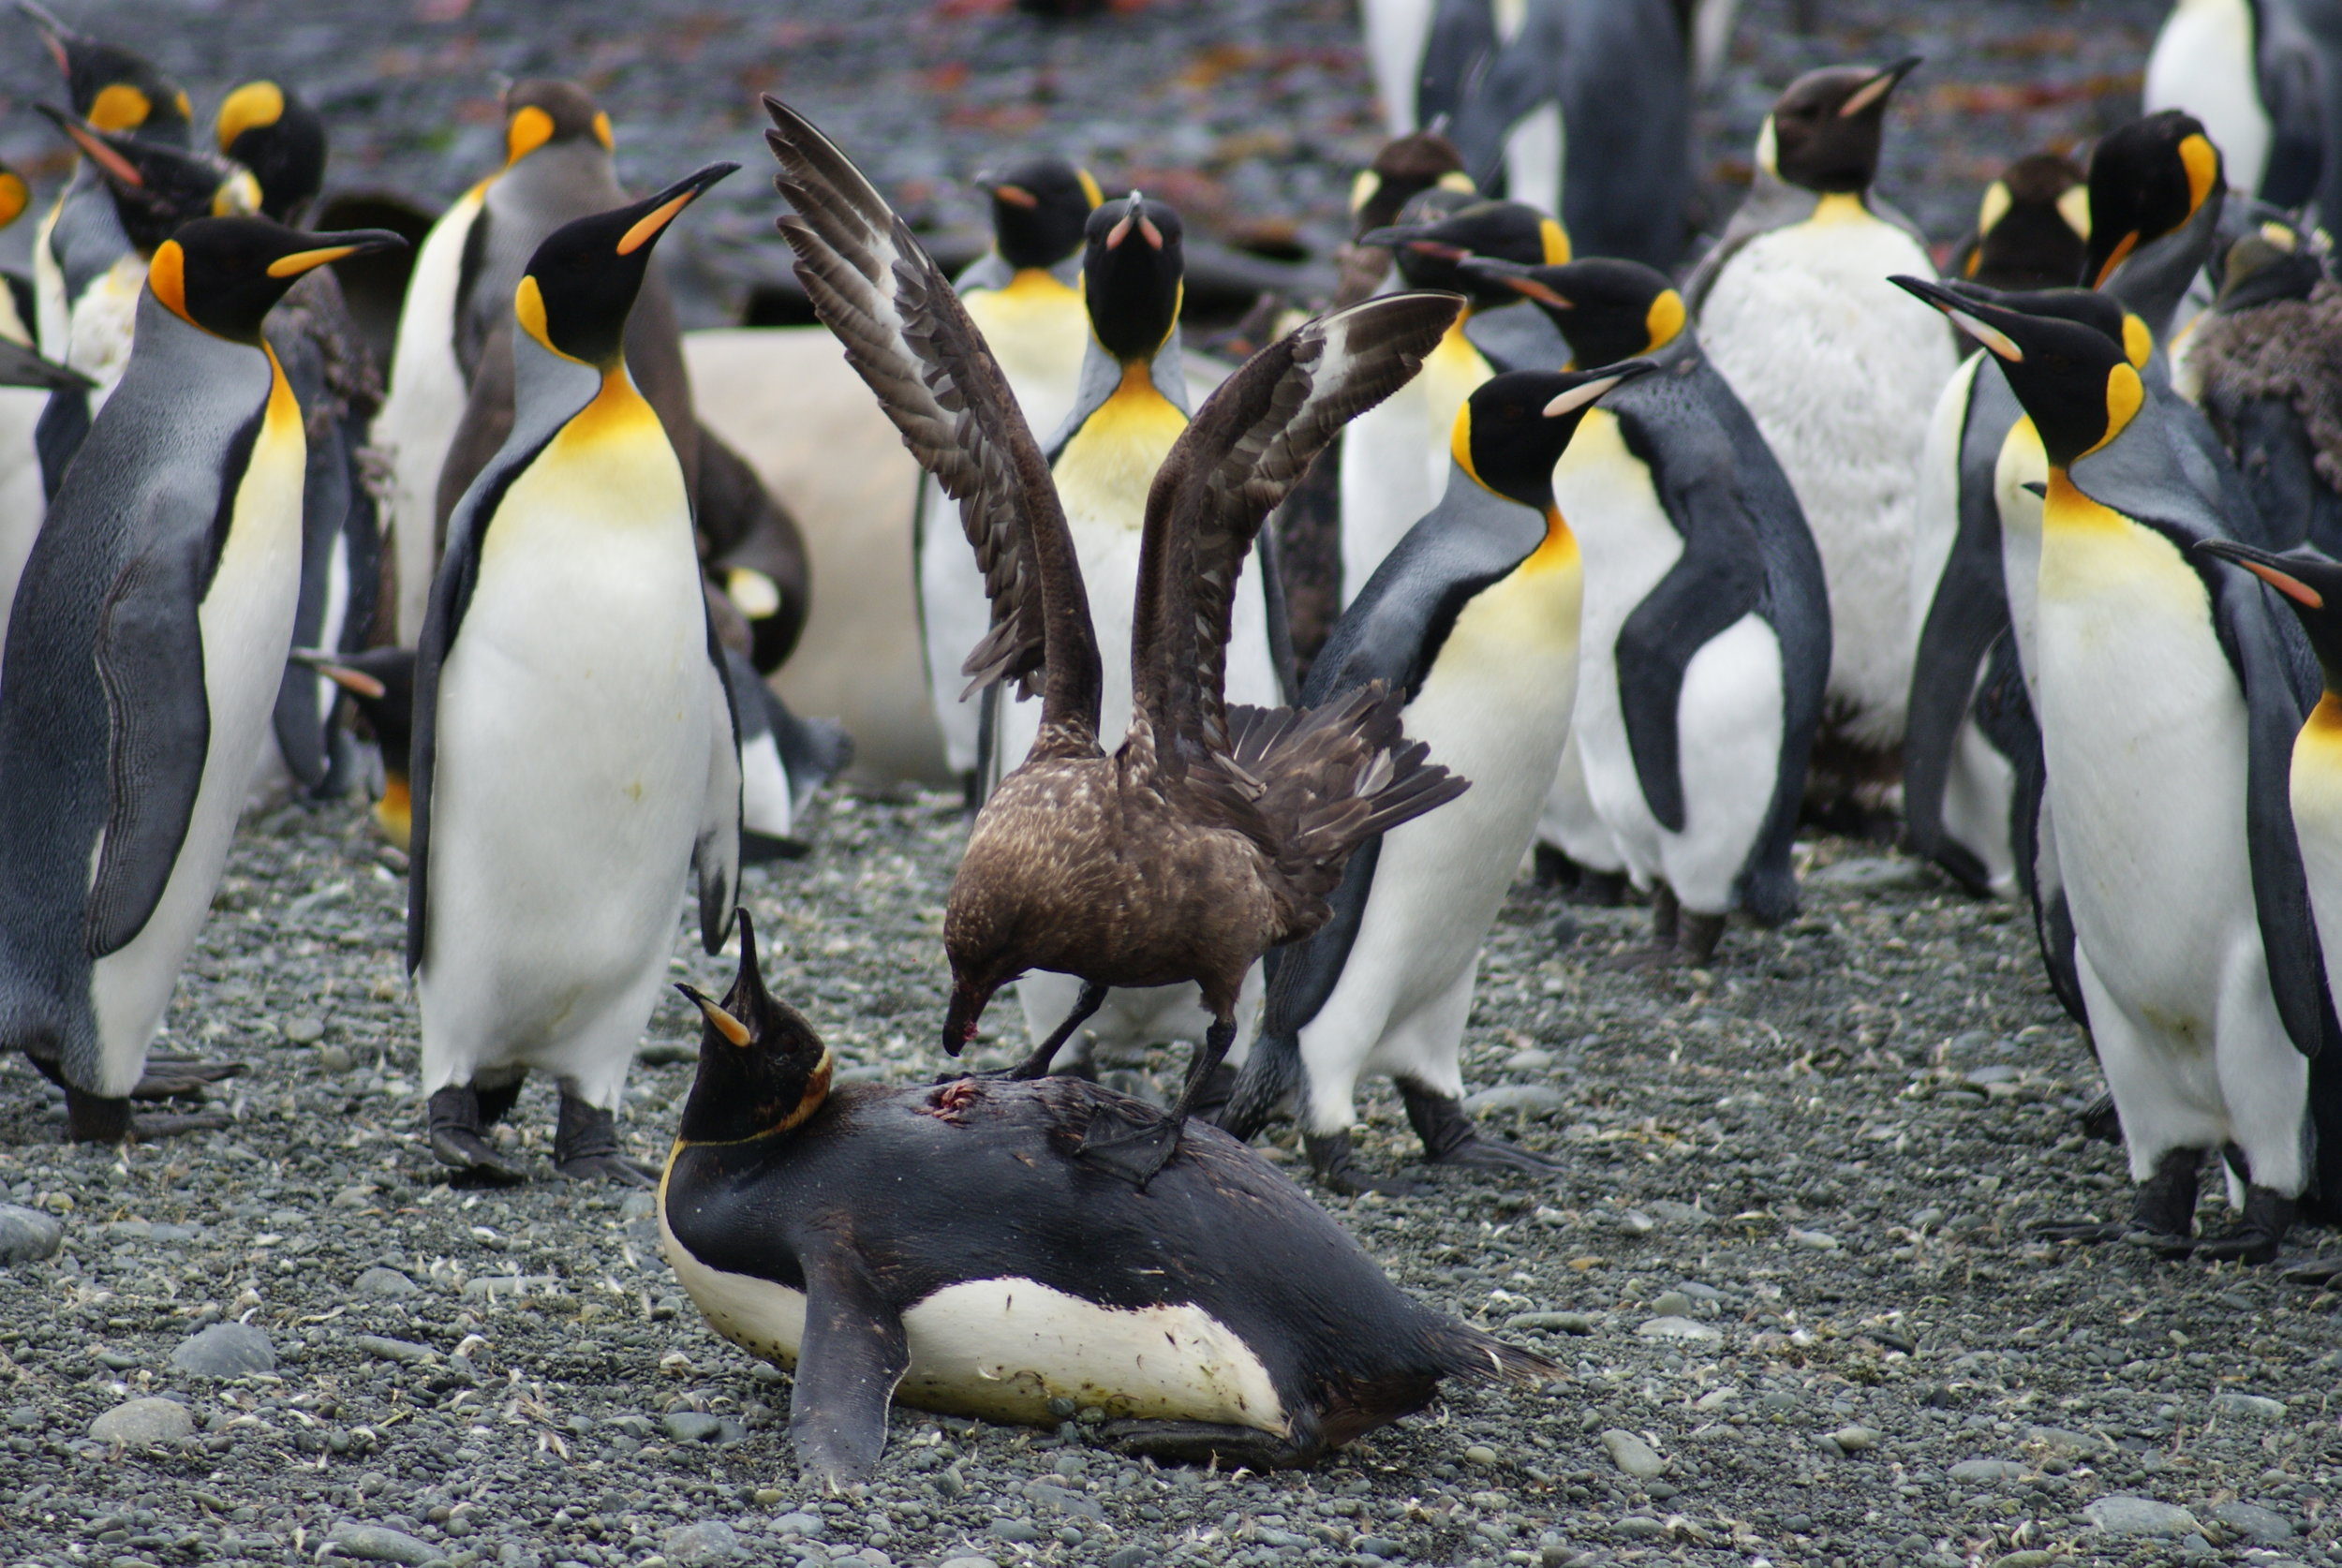 Brown Skua (Stercorarius antarcticus) attacking a King Penguin (Aptenodytes patagonicus). Photo Josie van Dorst. Winner of the 2012 UNSW Science photography award in the Wonder category.